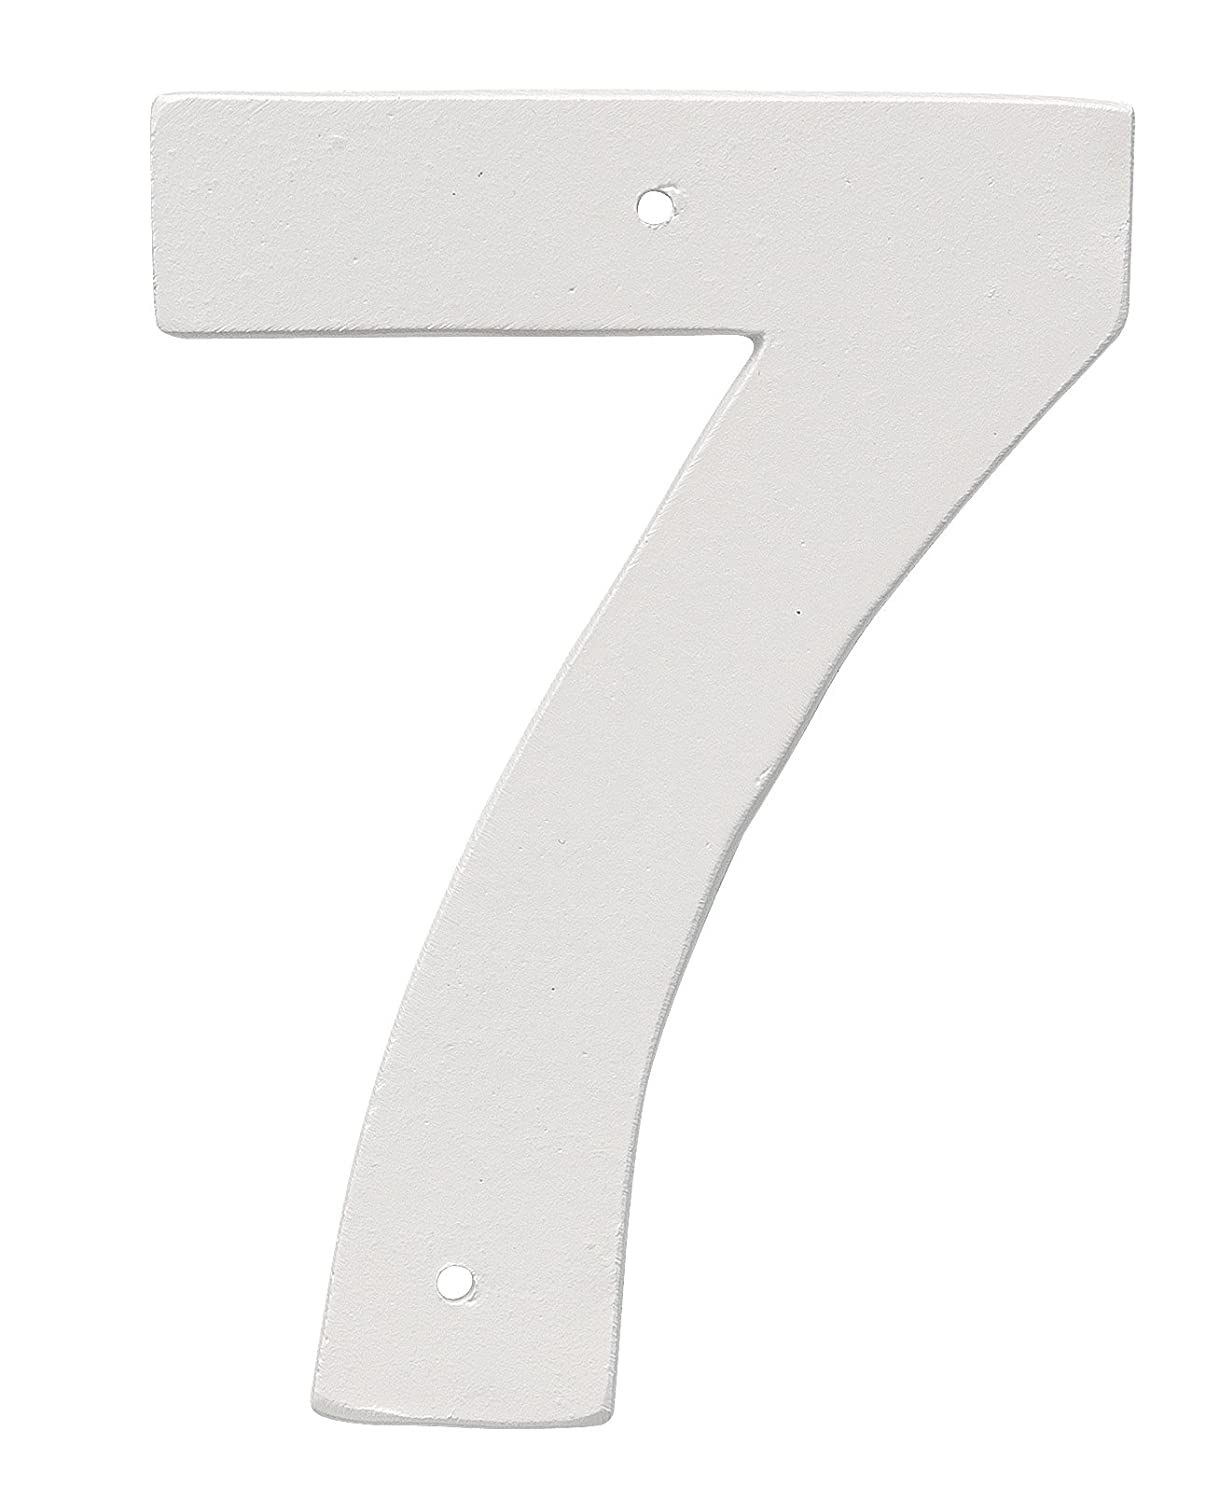 Montague Metal Products 6' Aluminum House Number 7 Outdoor Plaque, Medium, White